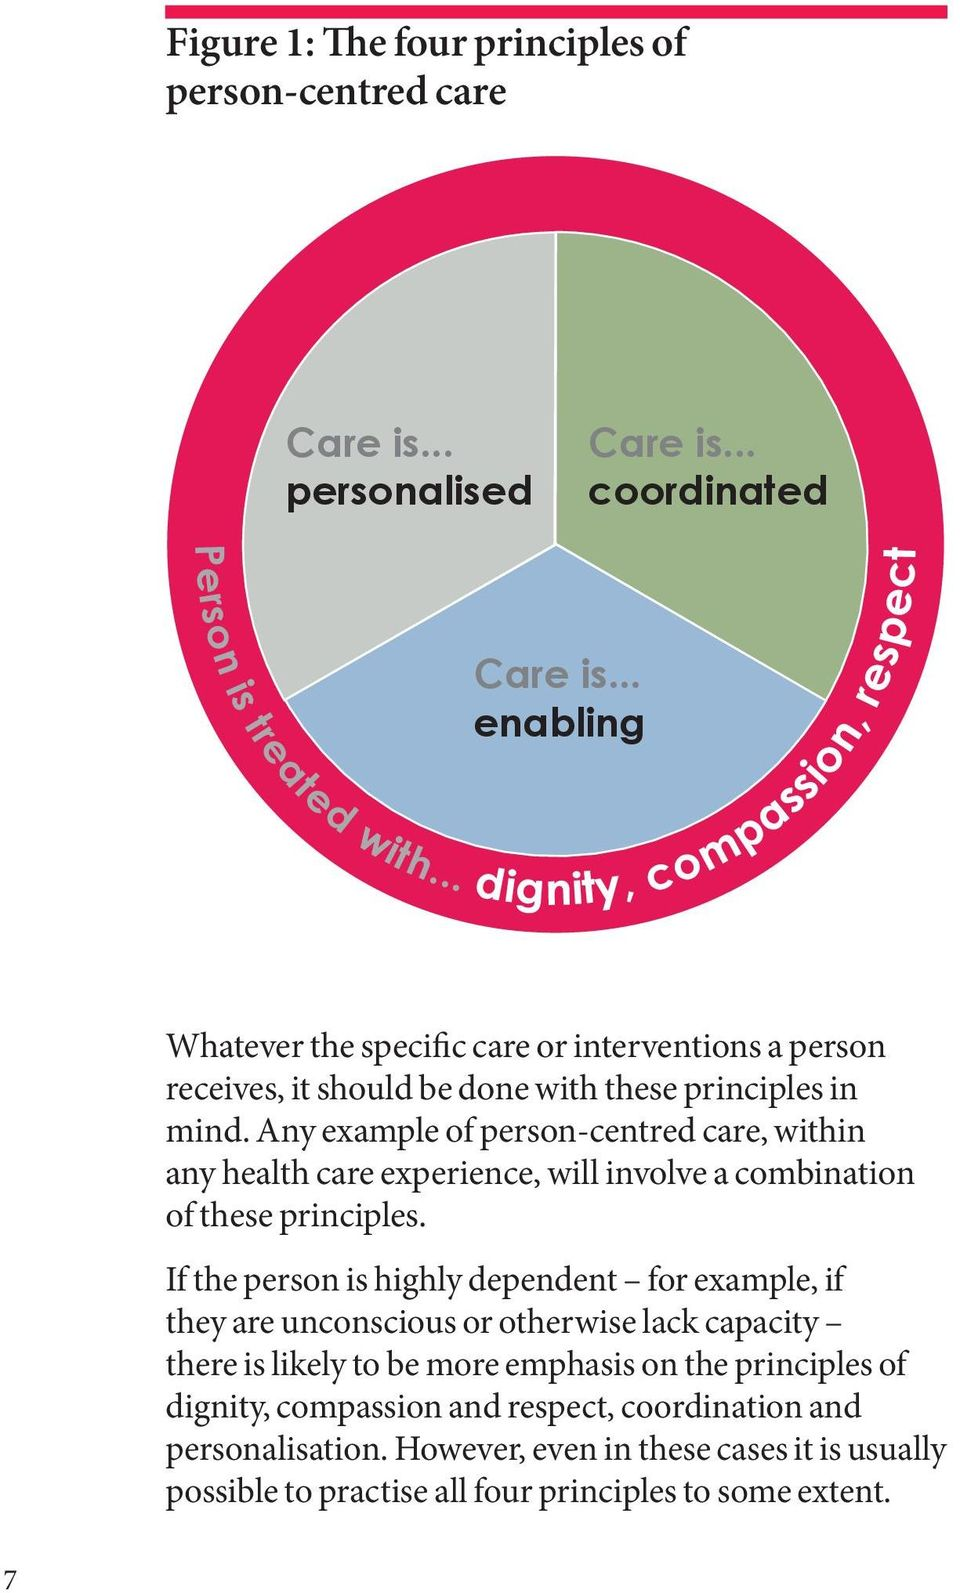 Any example of person-centred care, within any health care experience, will involve a combination of these principles.